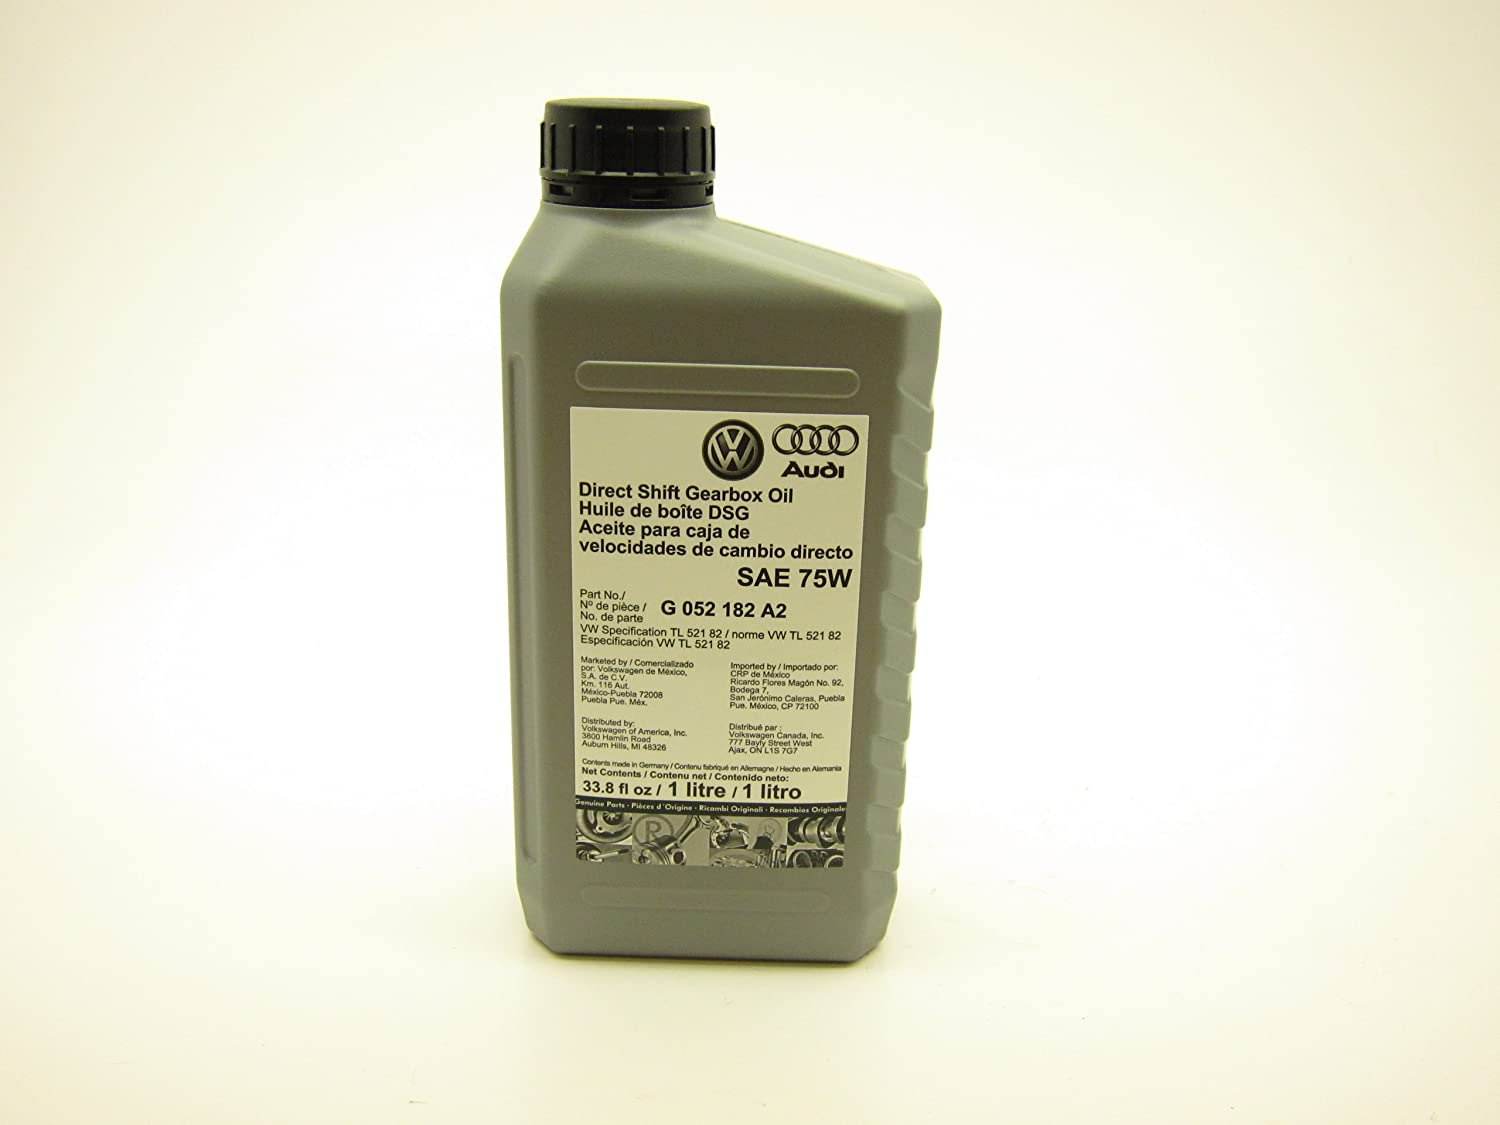 G-052-182-A2 DSG Transmission Oil 1 Case (12lts)